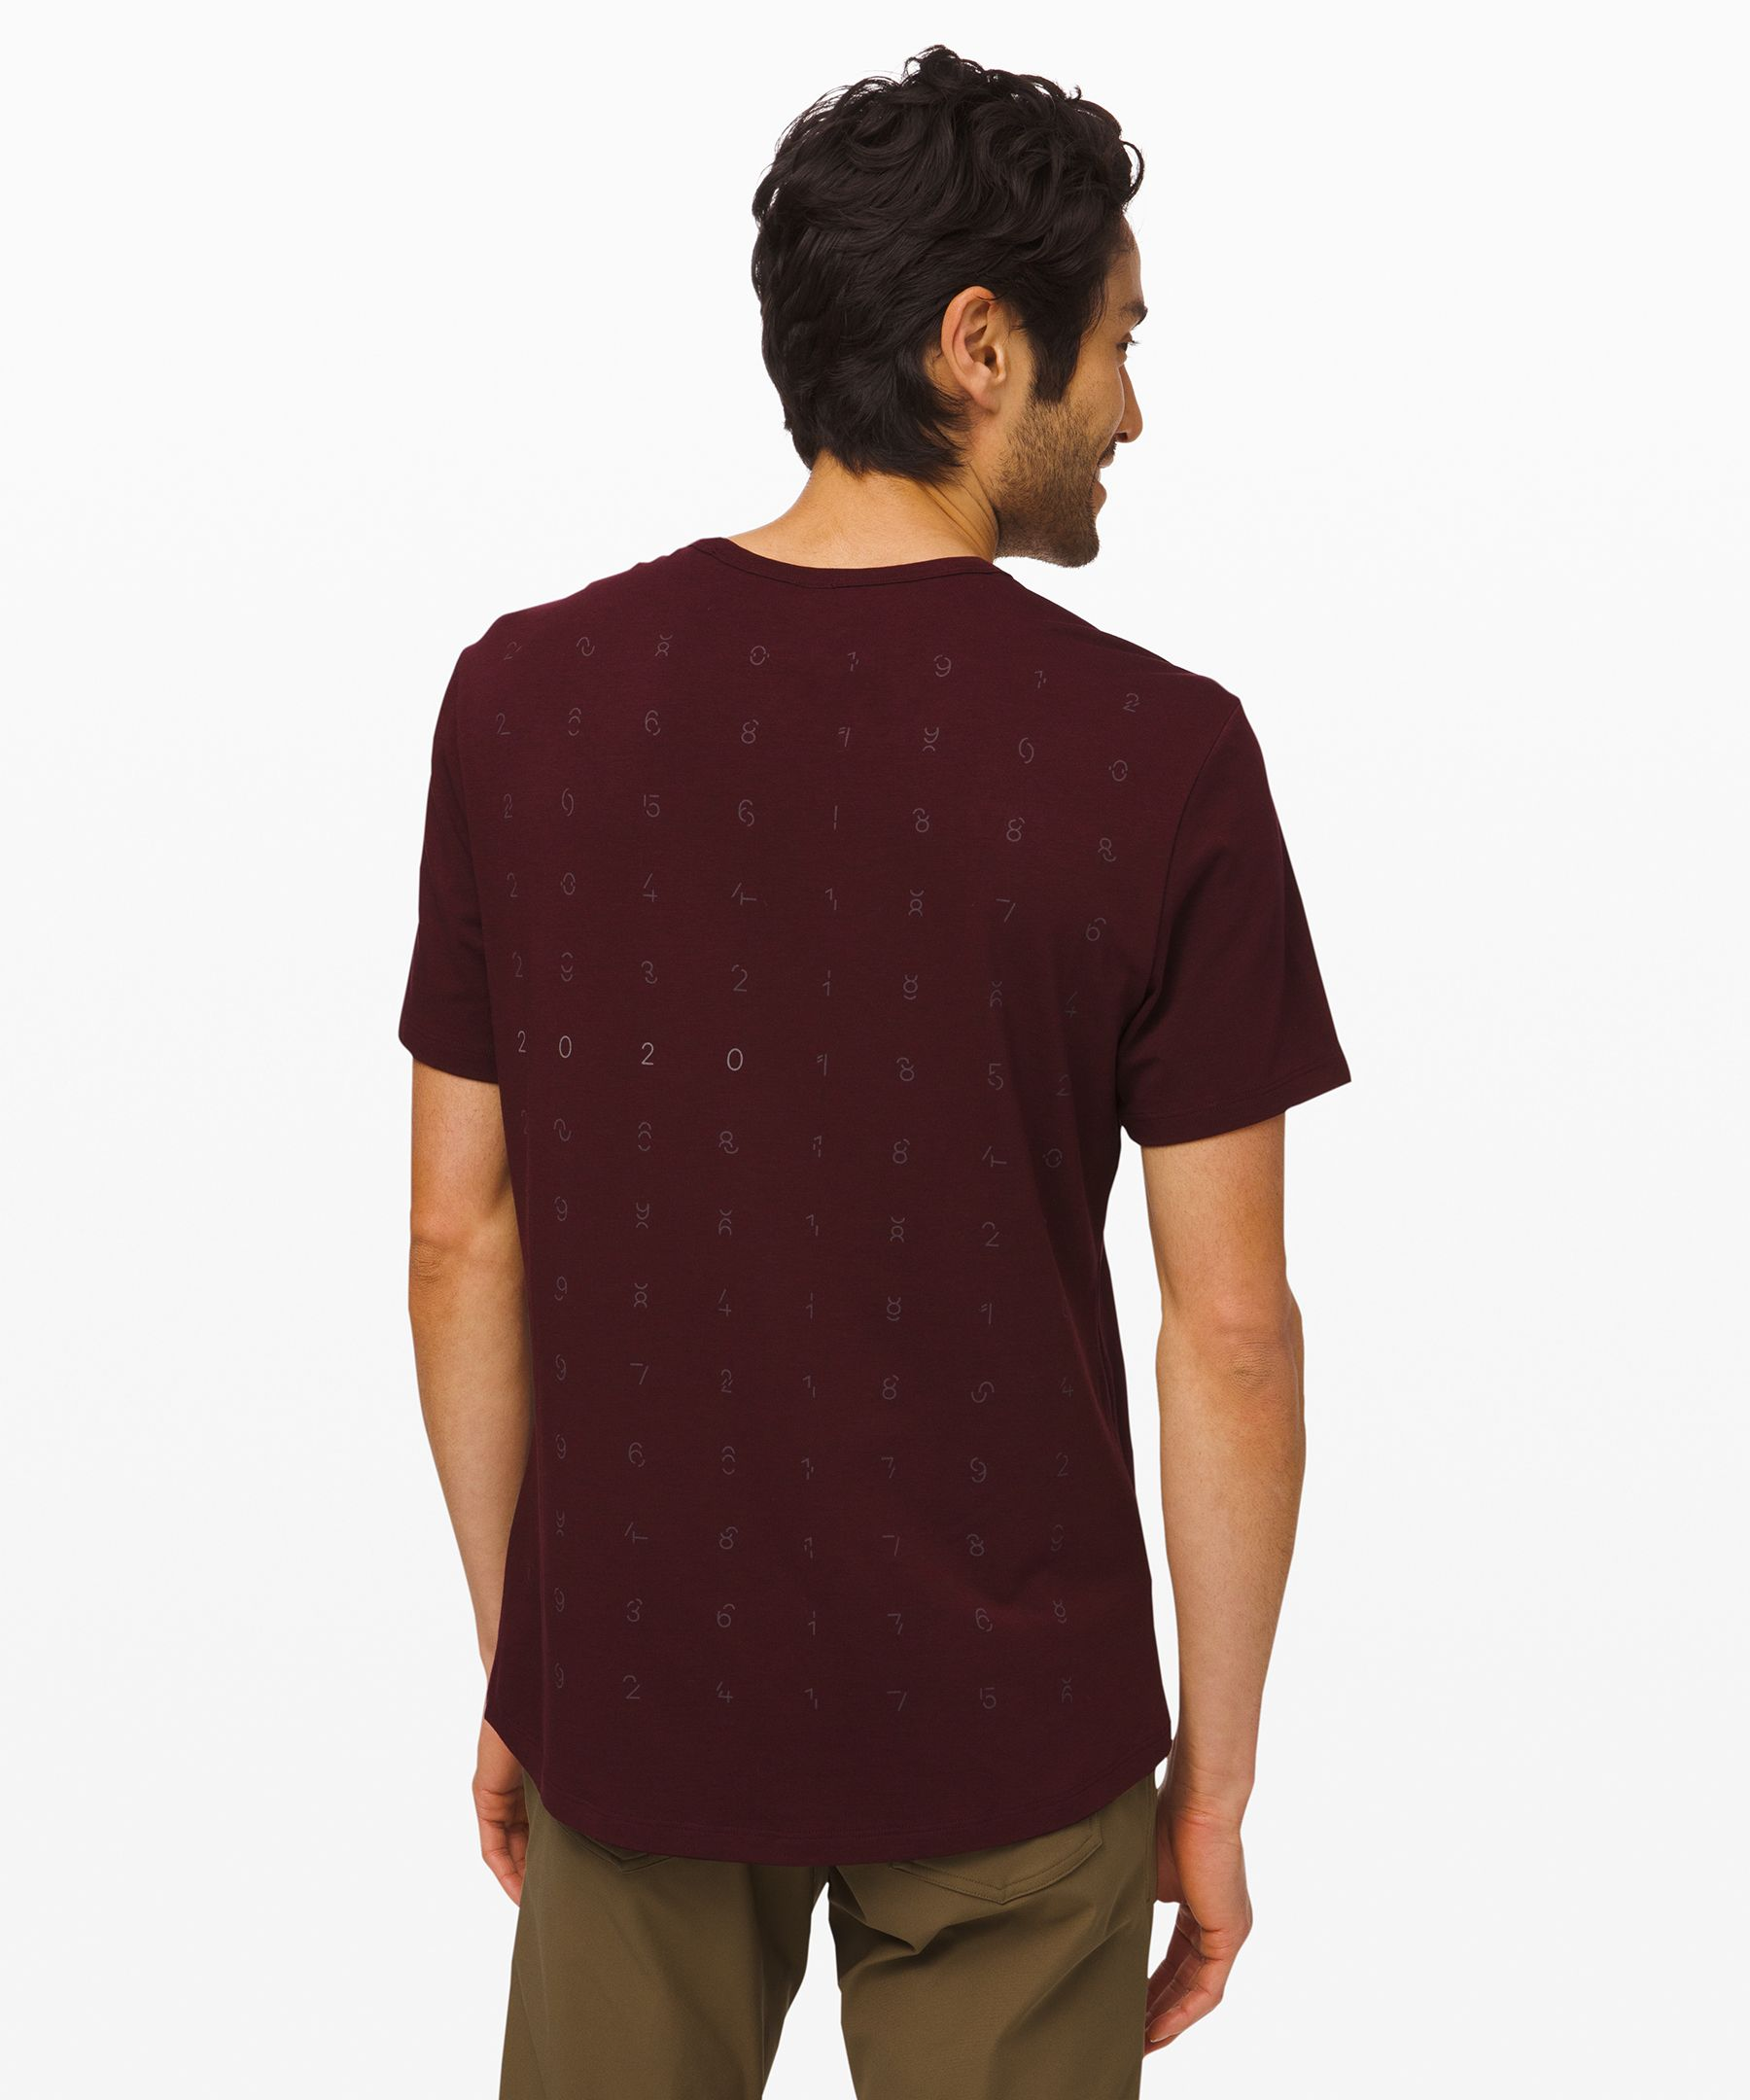 5 Year Basic Tee *Updated Fit